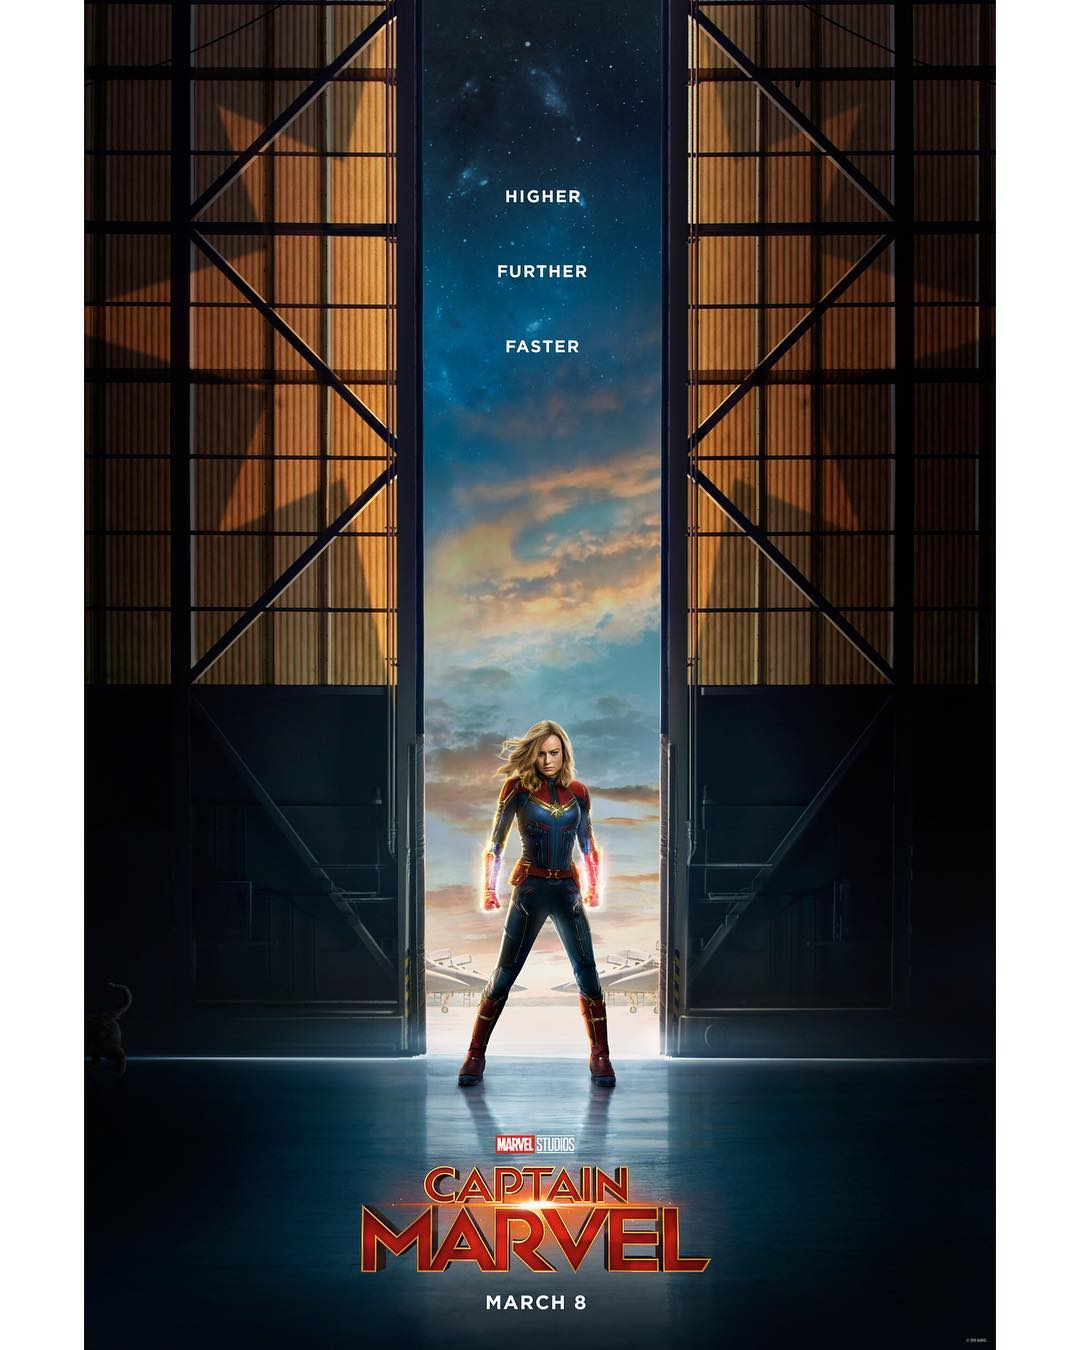 We just got our first glimpse of Brie Larson as Captain Marvel